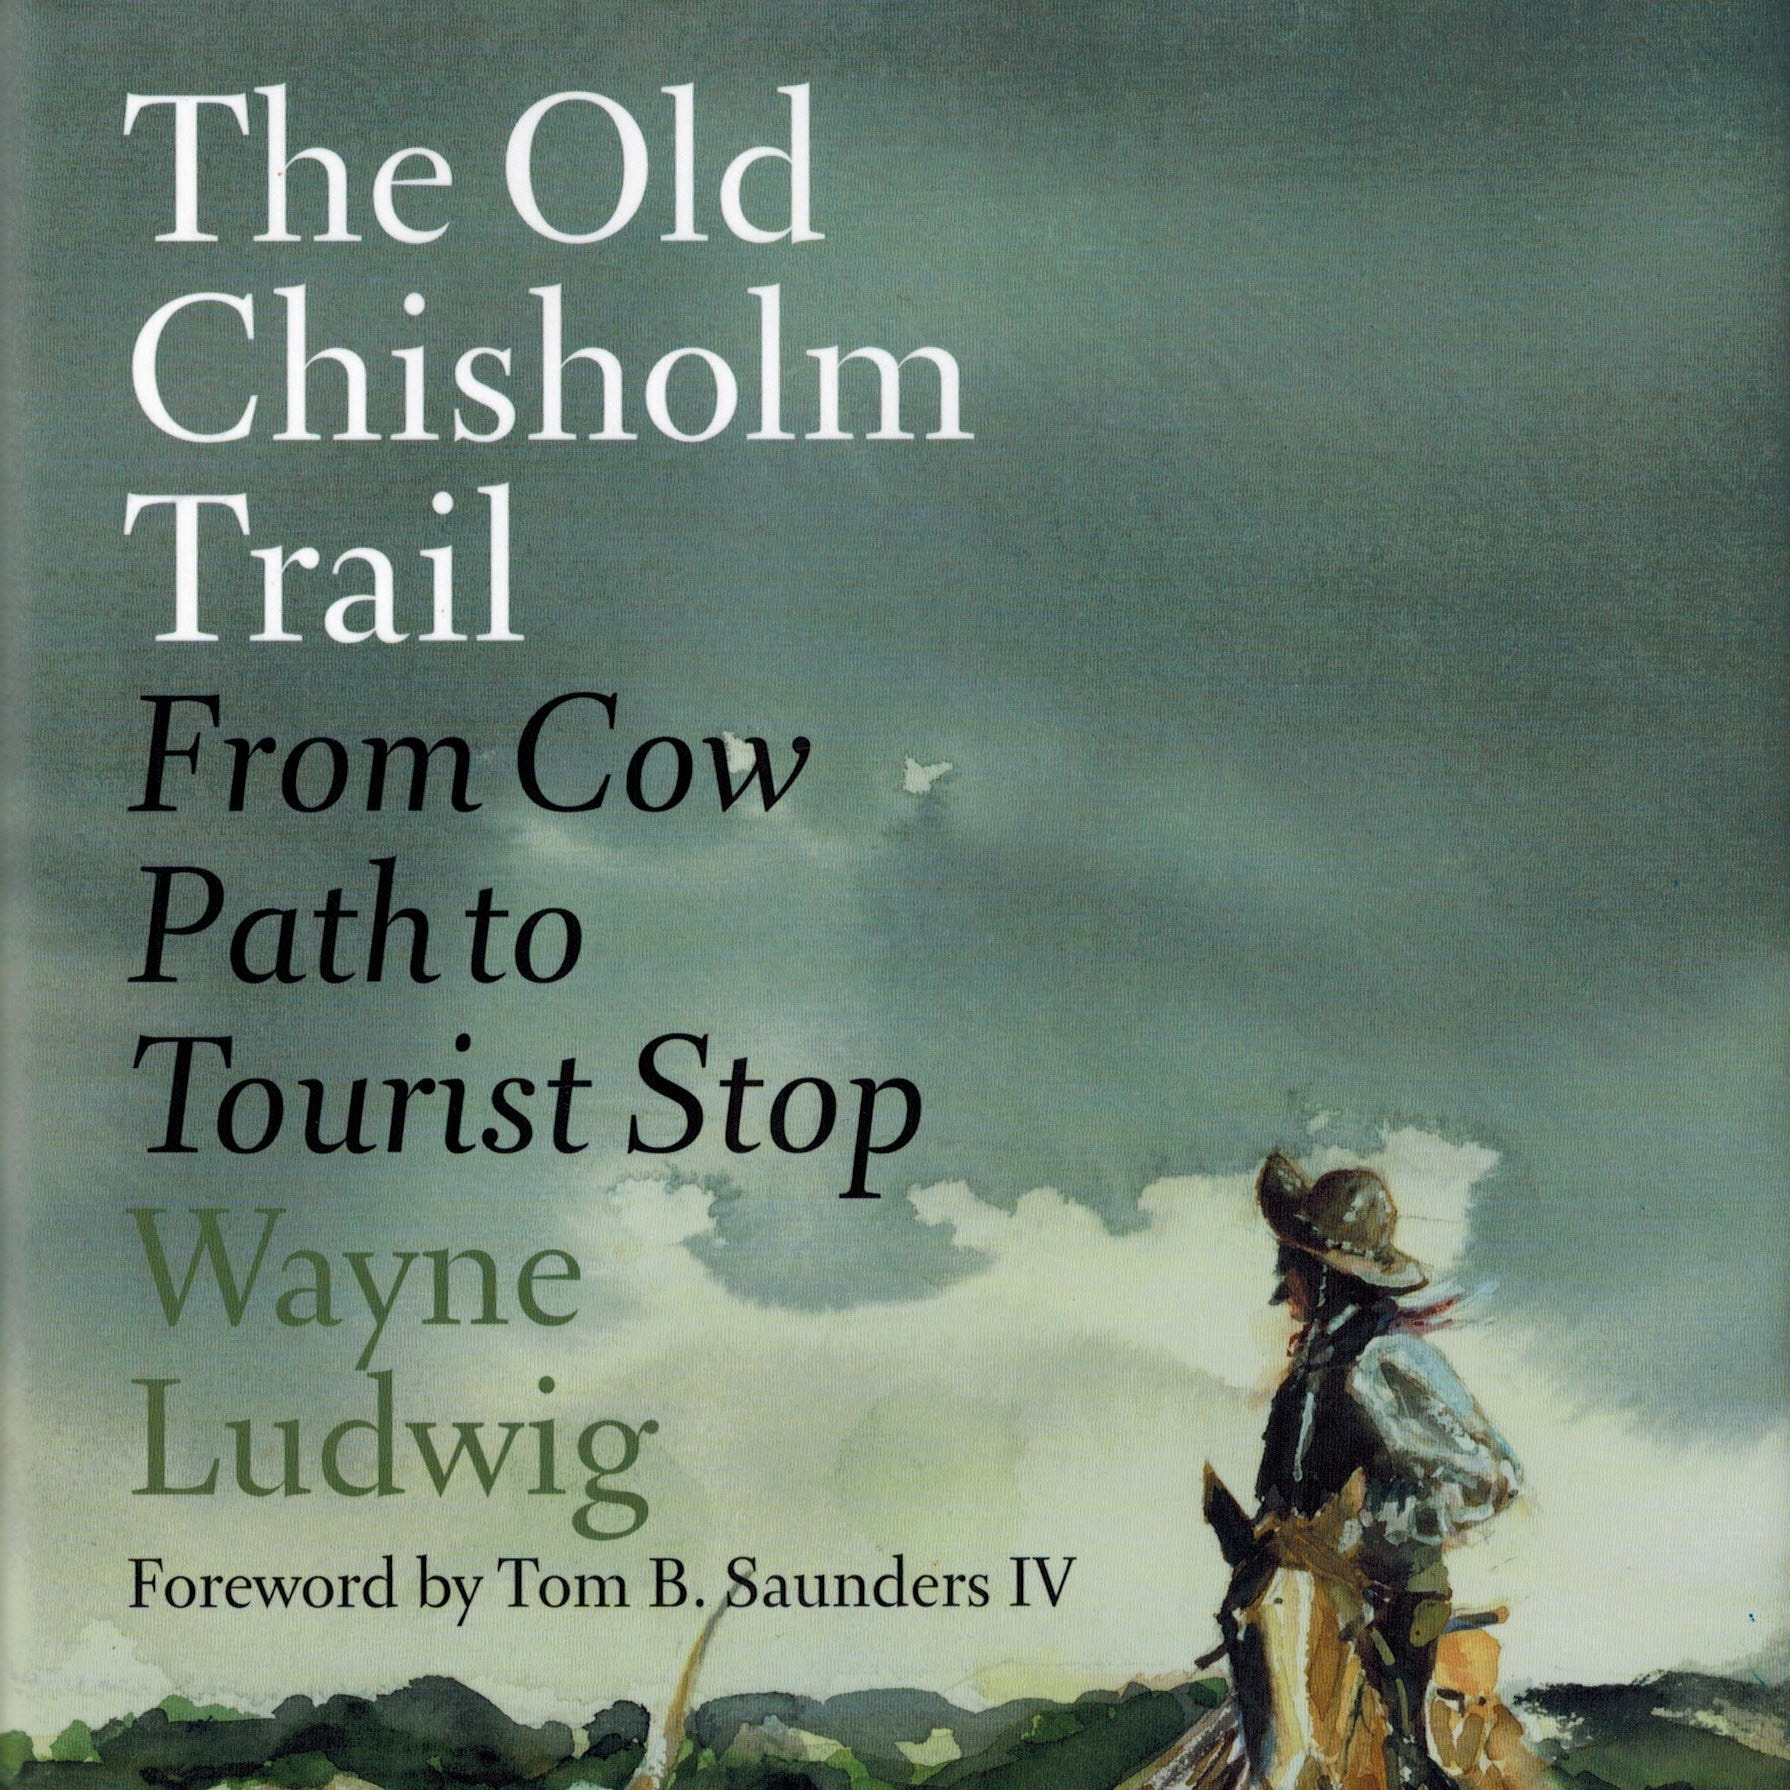 Texas Reads: Historians debate Chisholm Trail in Texas